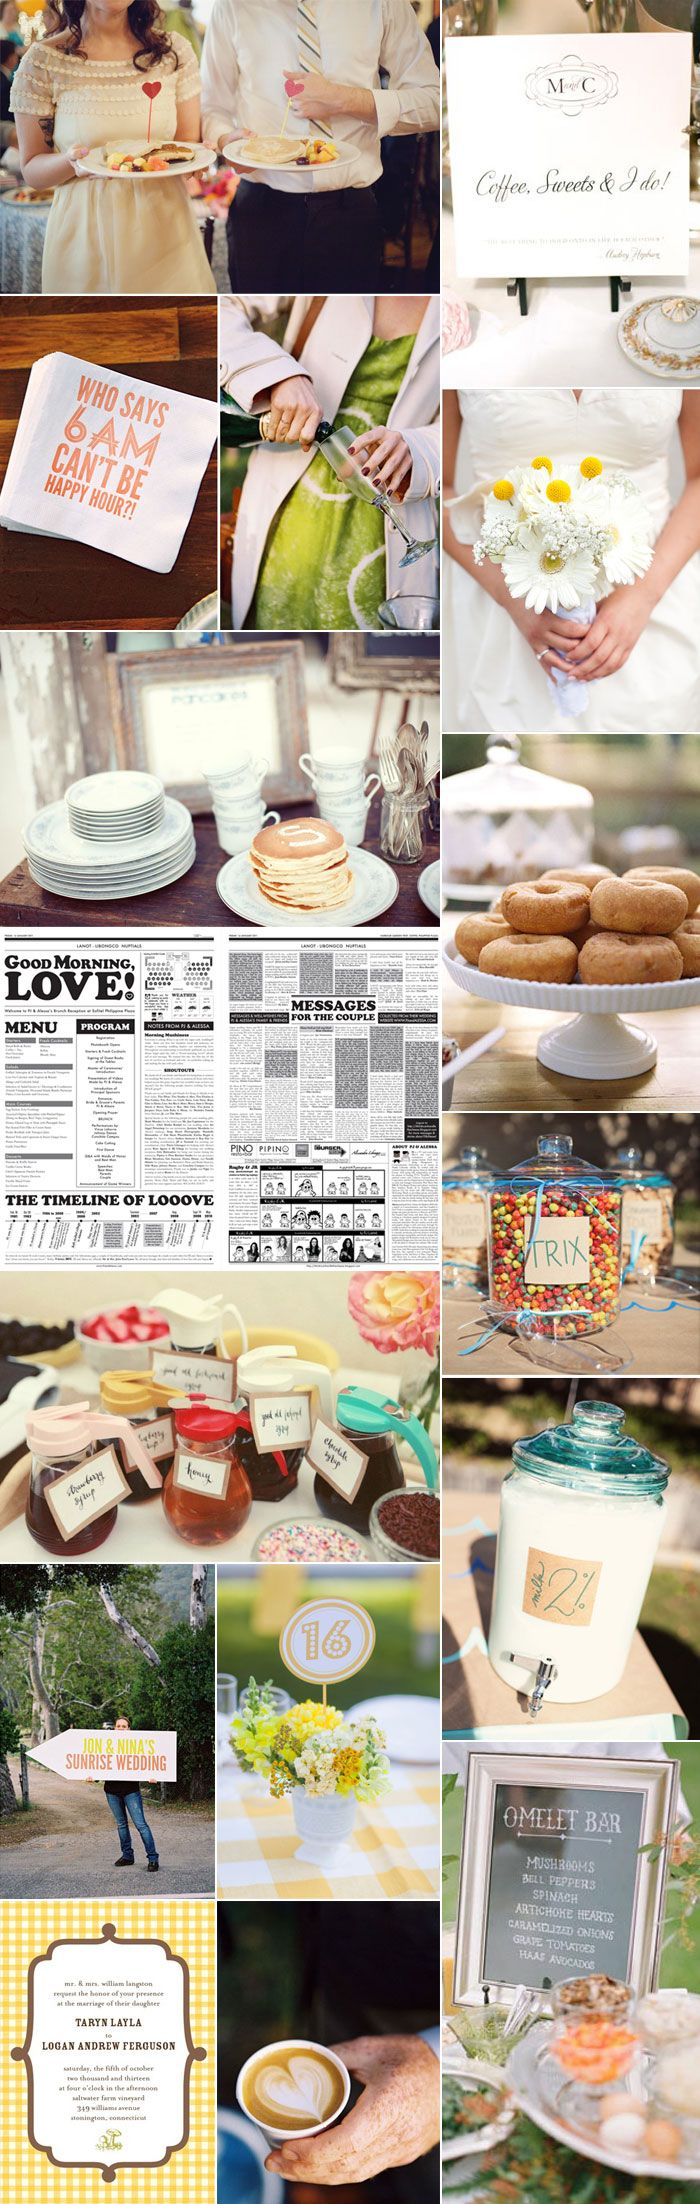 SUPER cute idea! Breakfast or Brunch Wedding for an early morning wedding